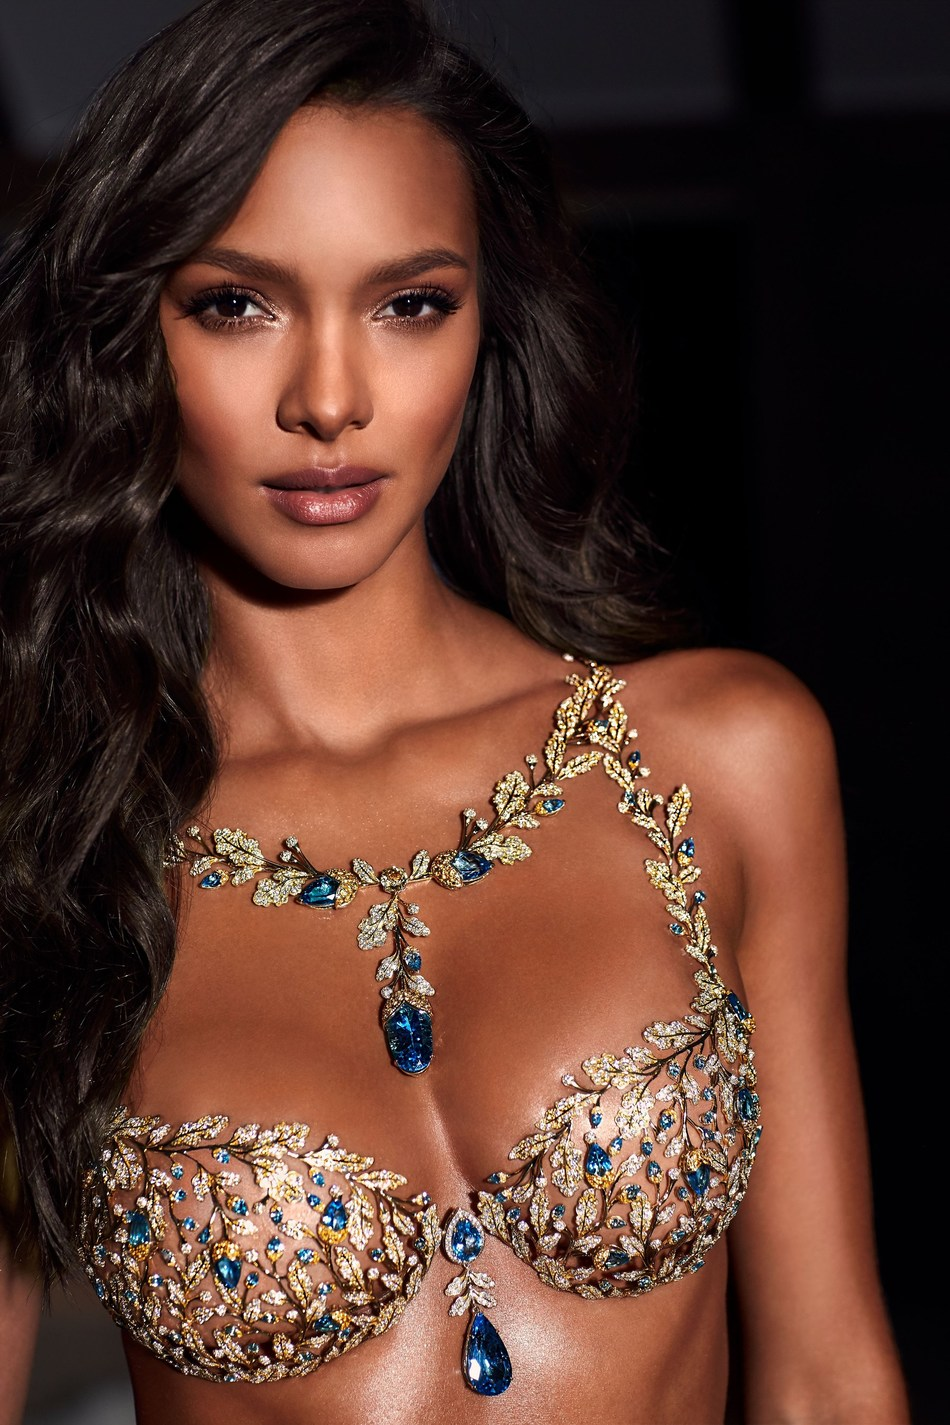 Victoria's Secret Angel Lais Ribeiro in the 2017 Champagne Nights Fantasy Bra by Mouawad (PRNewsfoto/Mouawad)